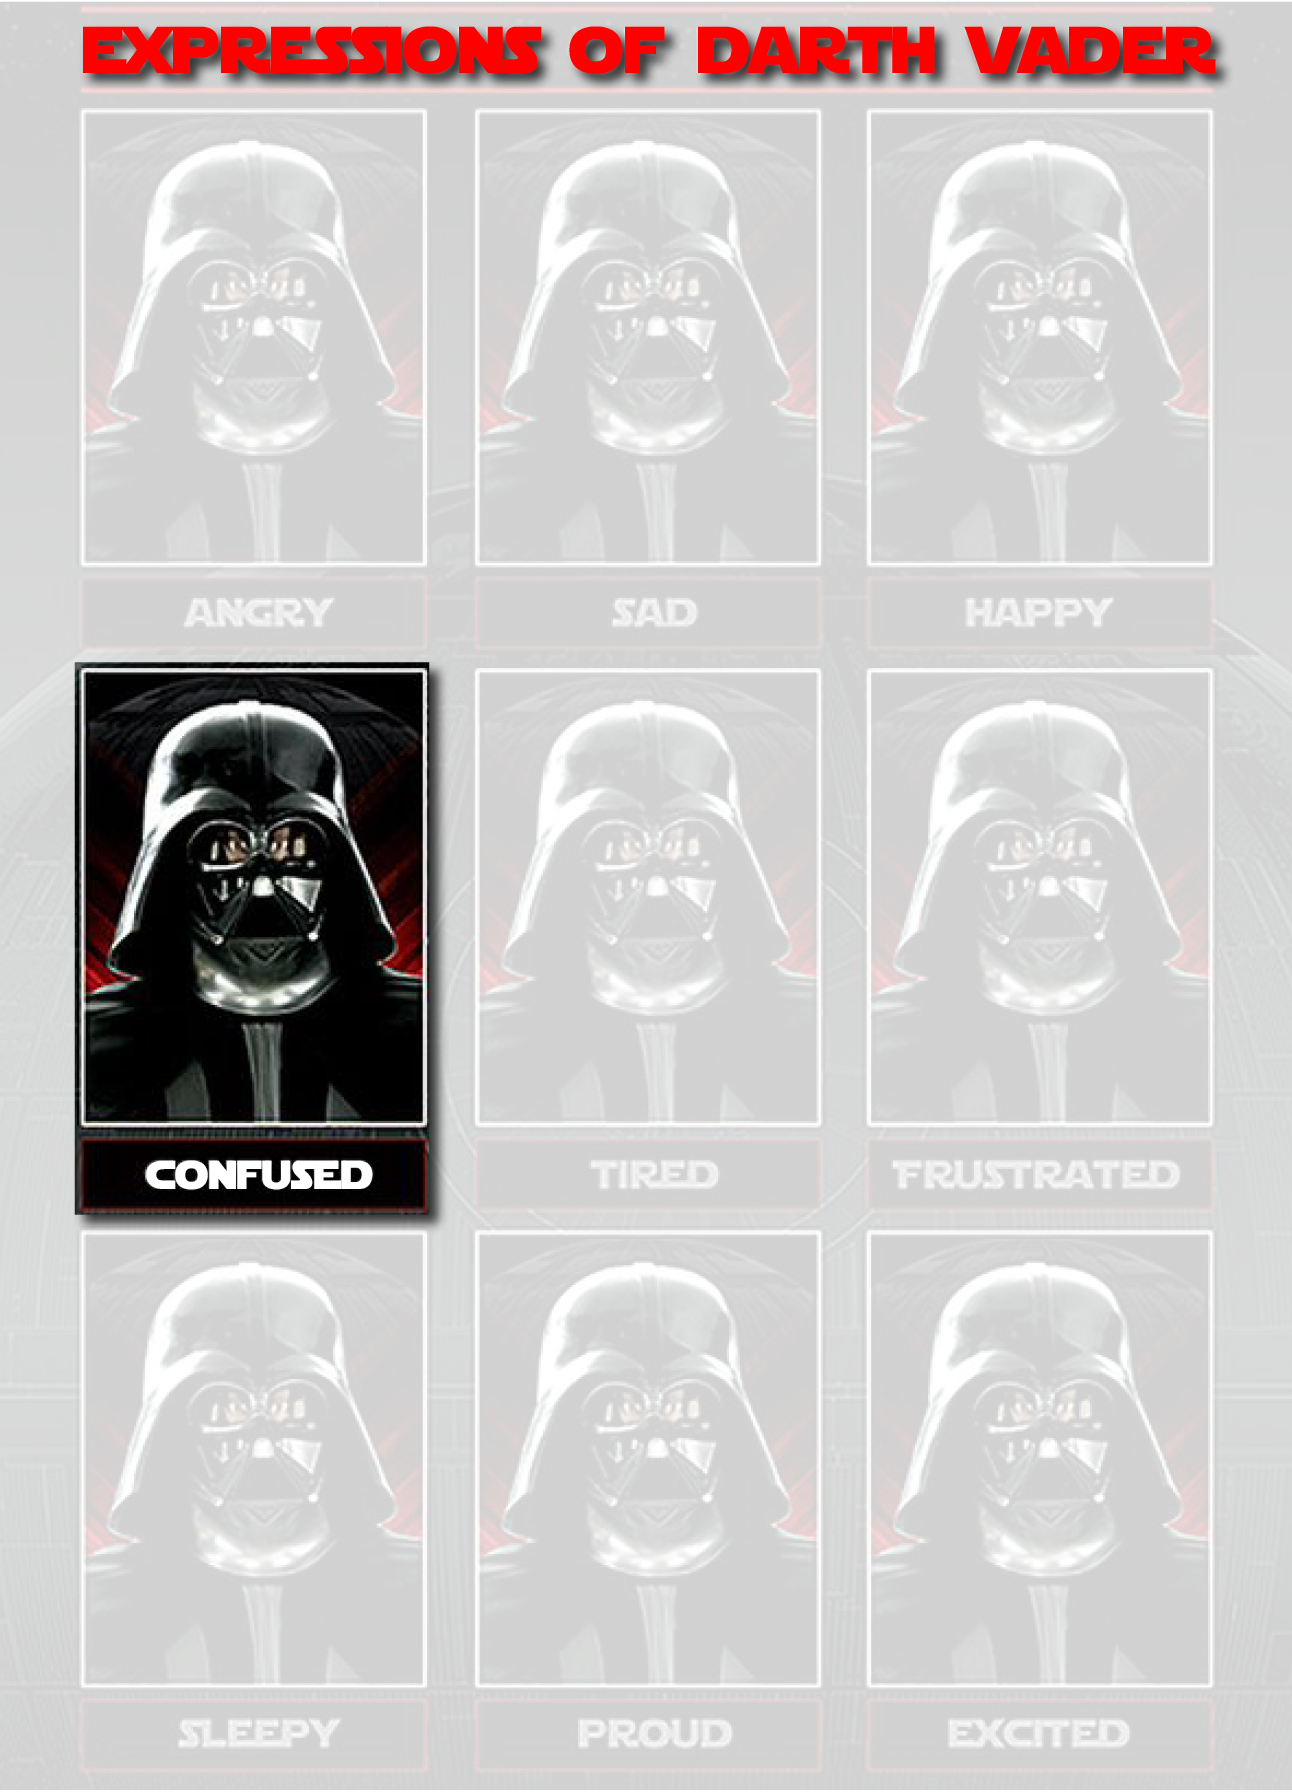 Expressions of darth vaderjpg